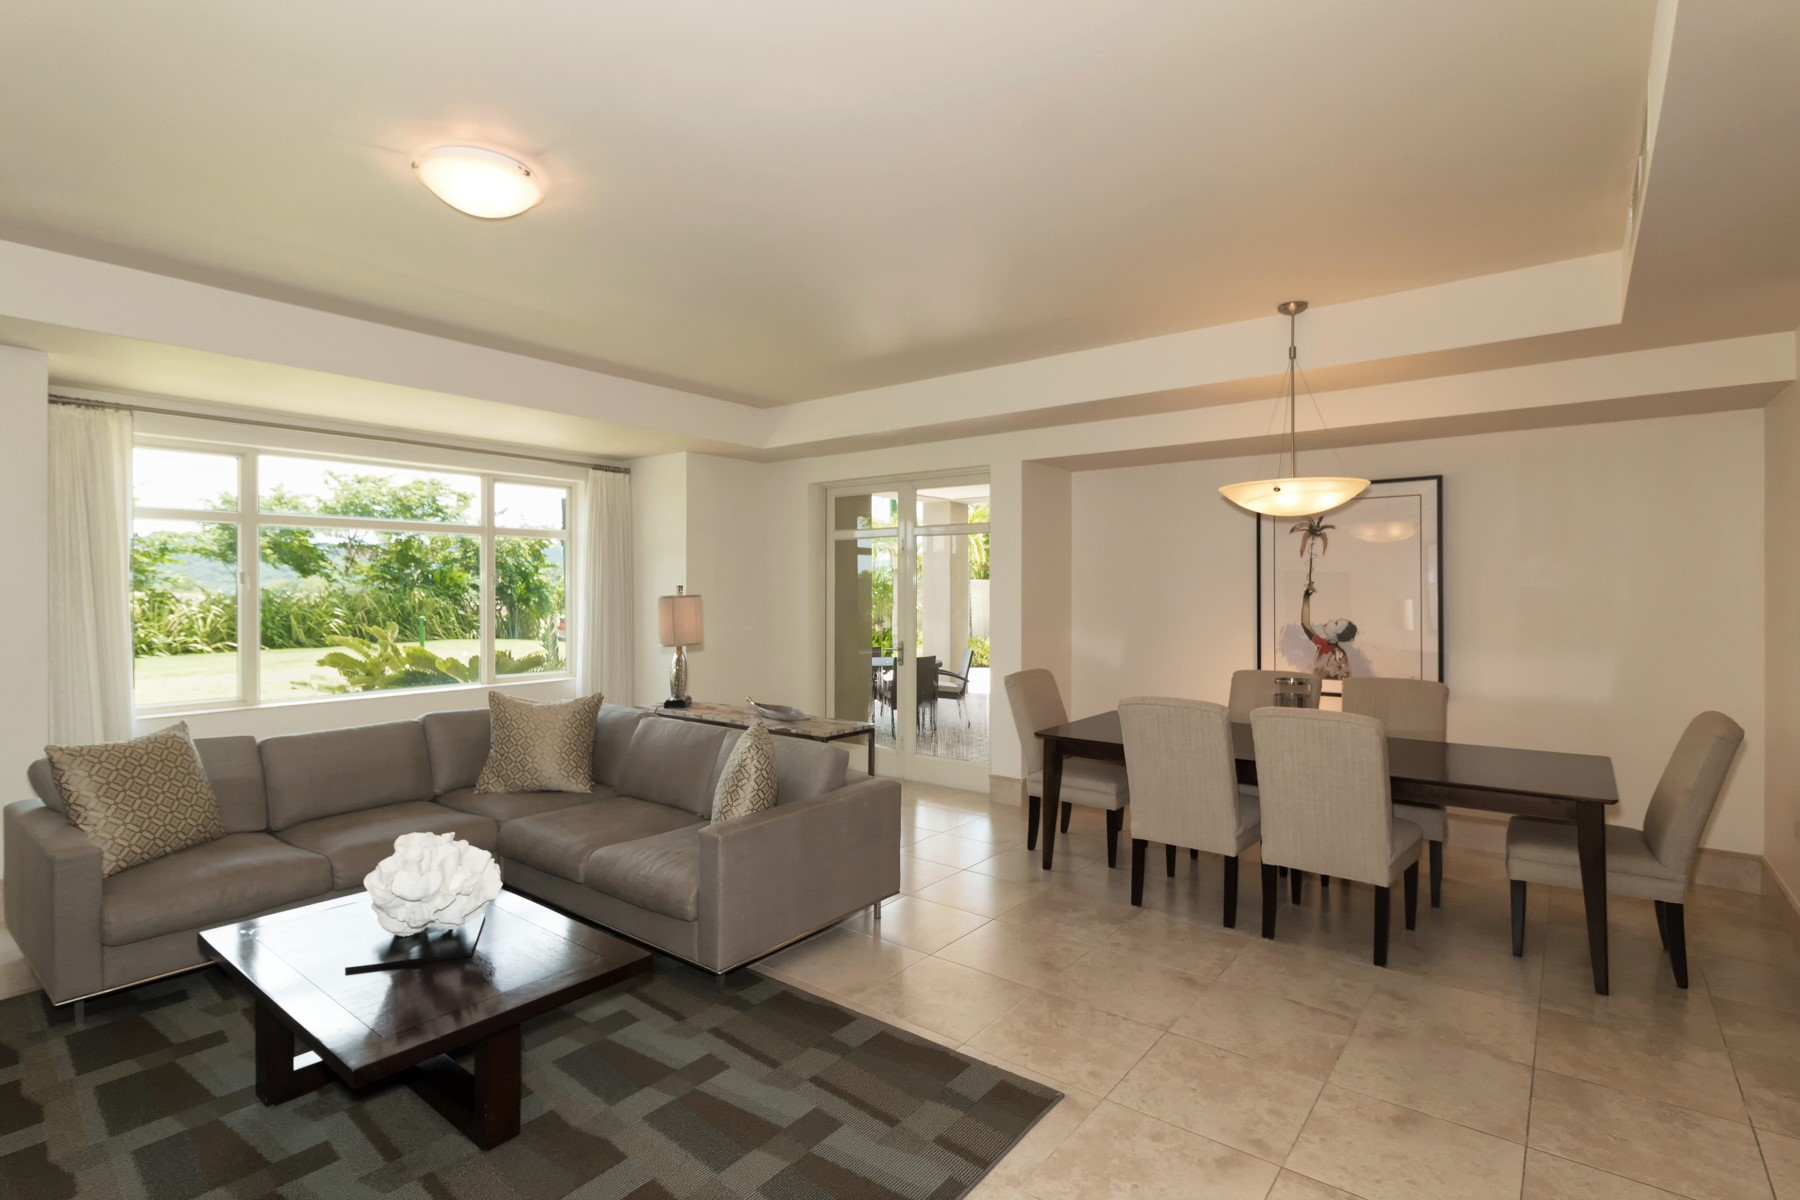 Additional photo for property listing at Plantation Village Spacious Ground Floor Residence 500 Plantation Drive Building 3, Apt 100 Dorado Beach, Puerto Rico 00646 Porto Rico